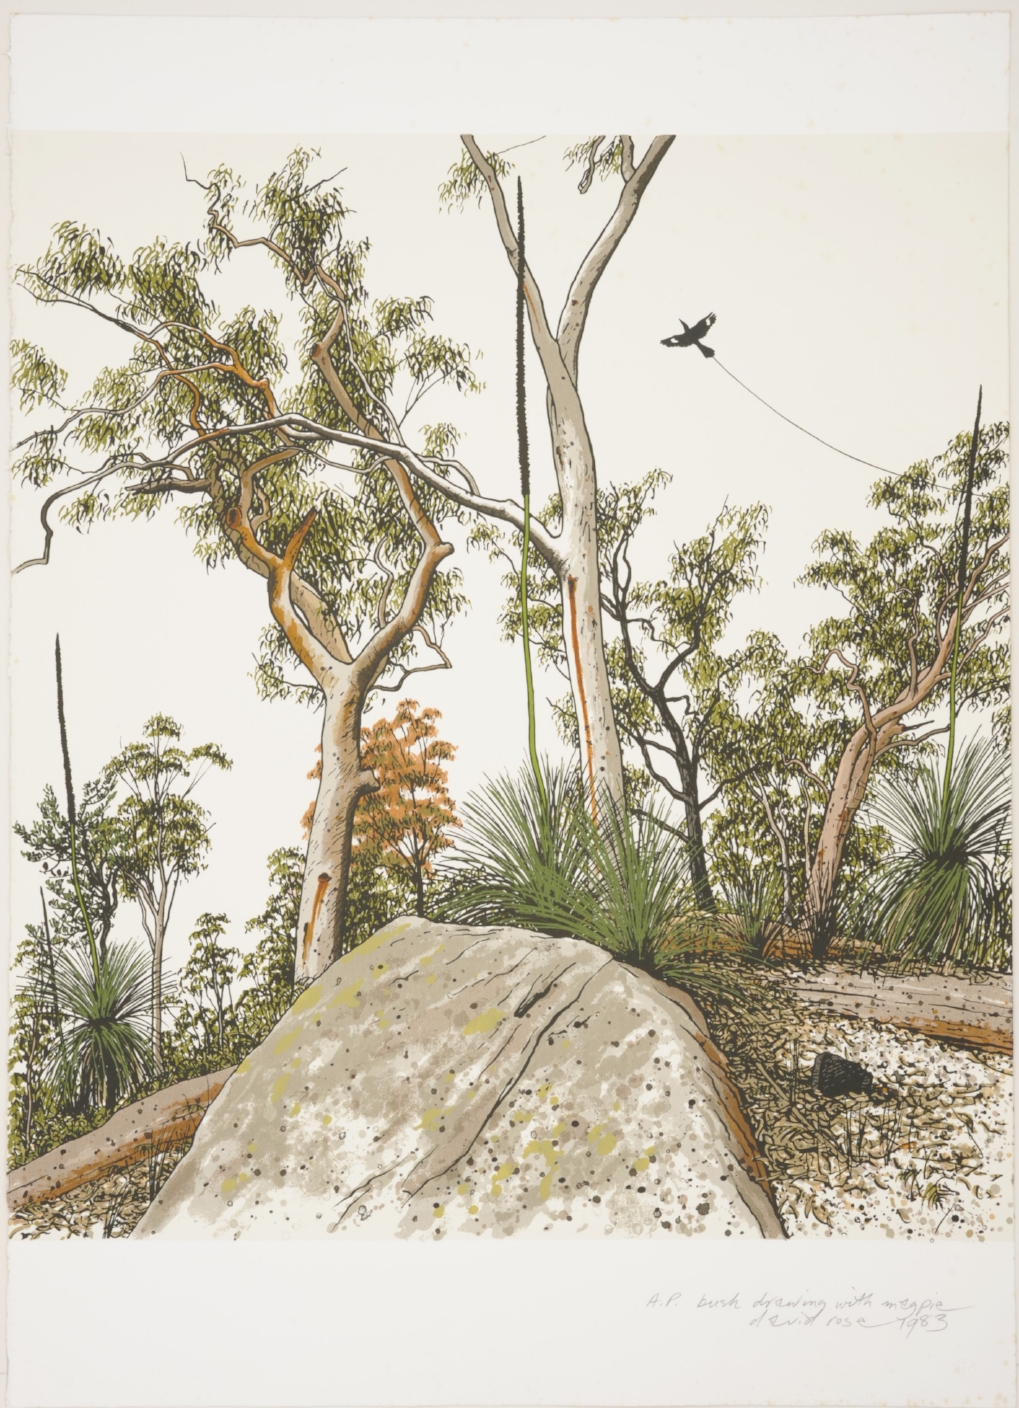 1983 bush drawing with magpie.JPG